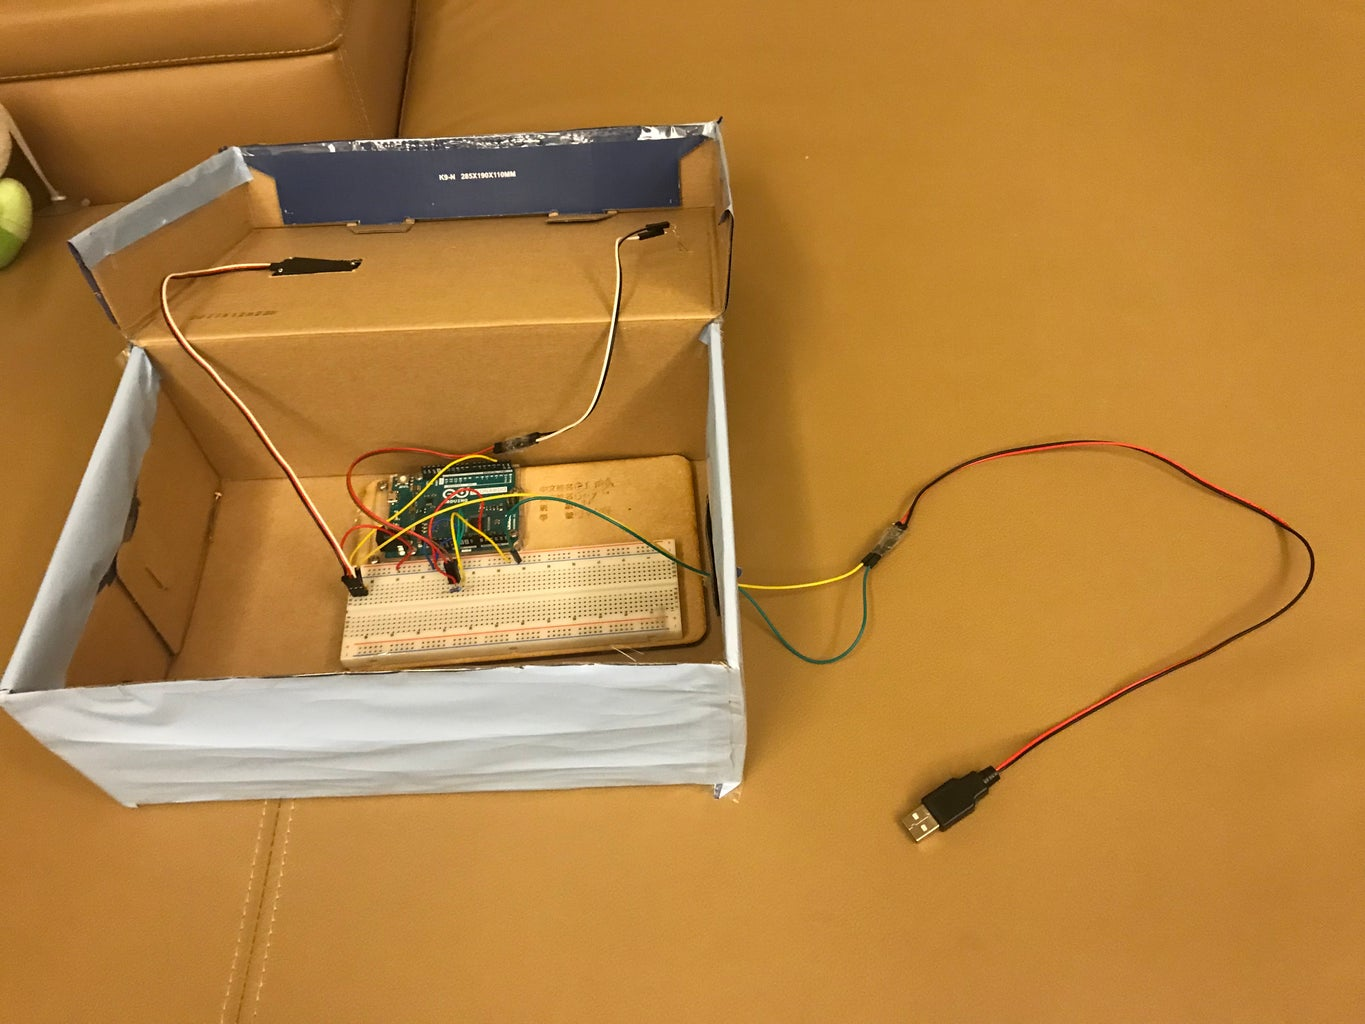 Insert the USB Cable From the Nick on the Side of the Box You've Just Made and Tuck It Into Its Position on the Circuit.